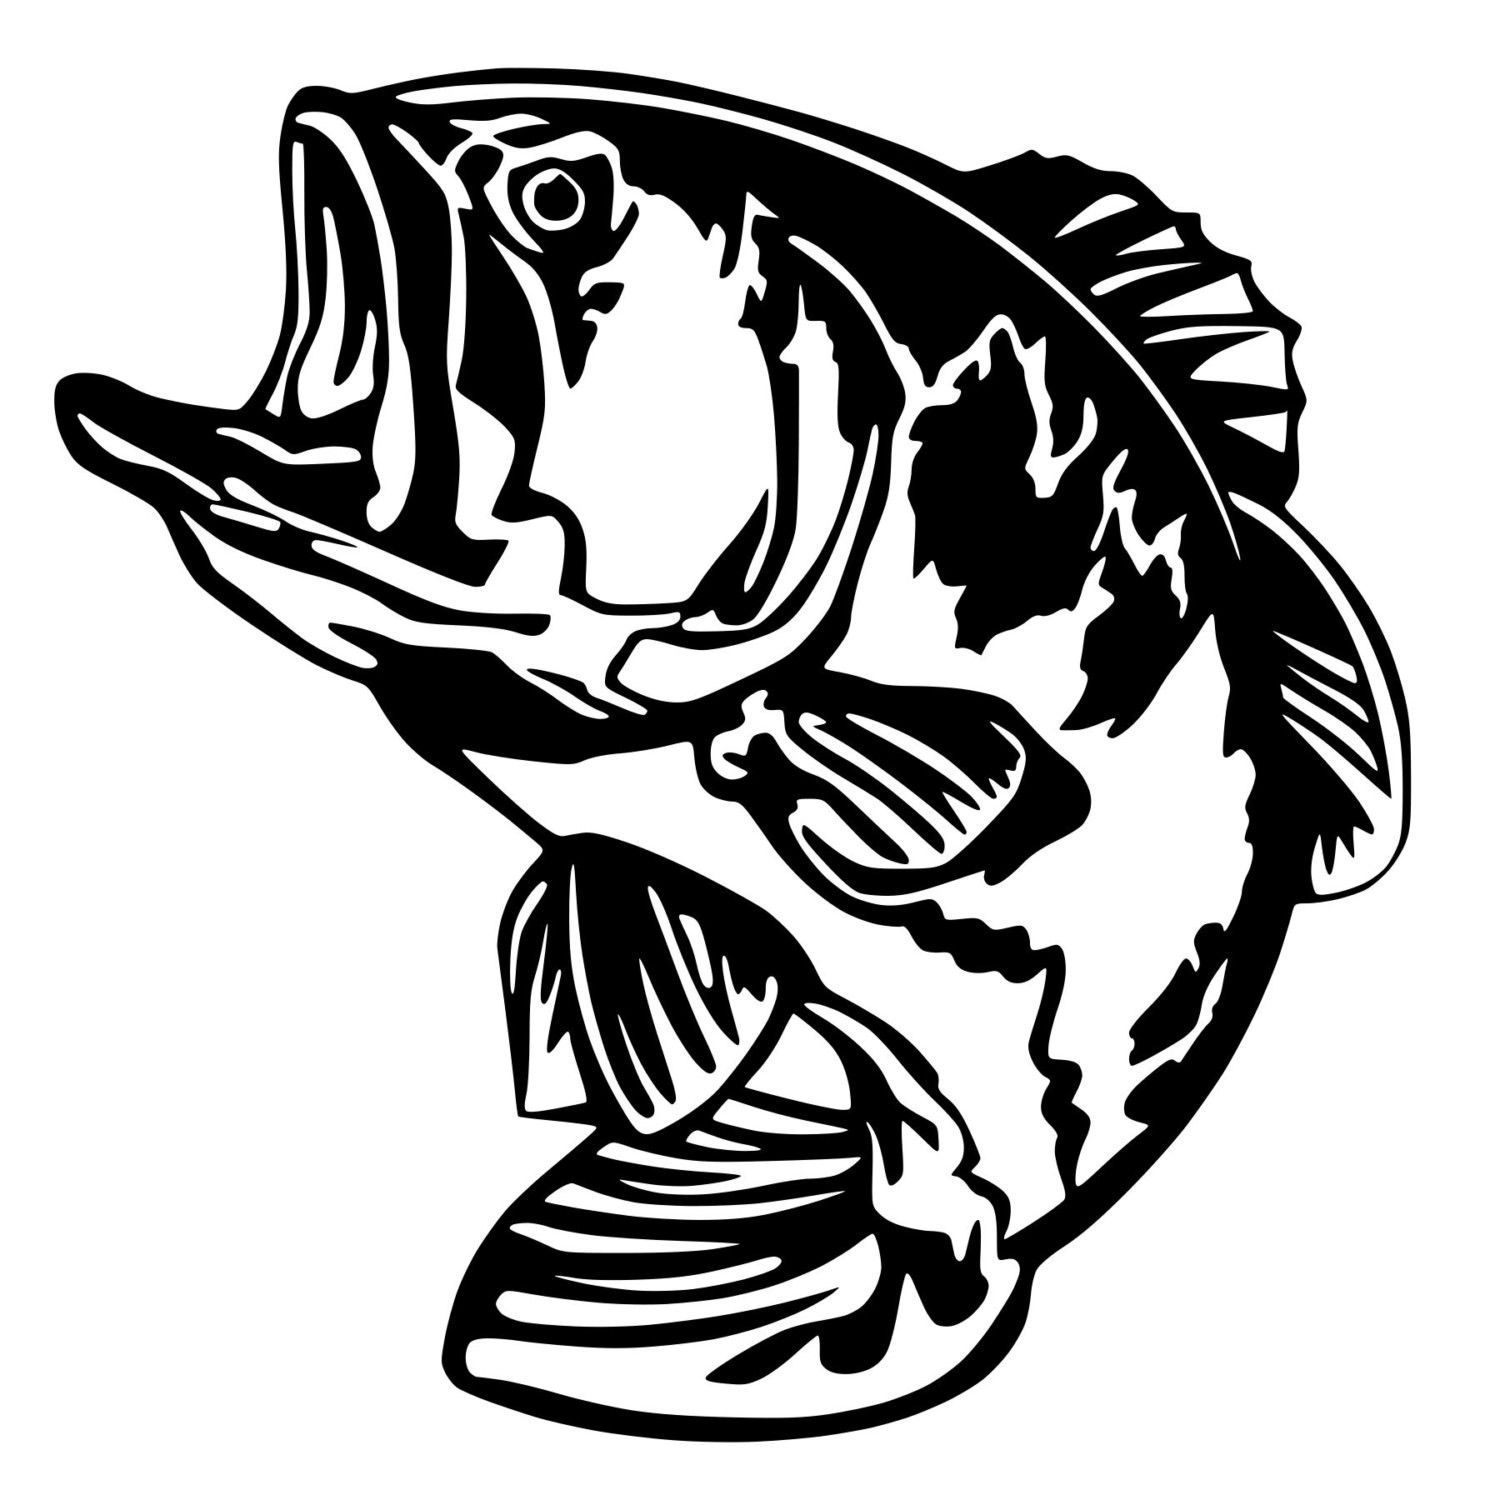 For your consideration is a die cut vinyl bass fishing decal available in multiple sizes